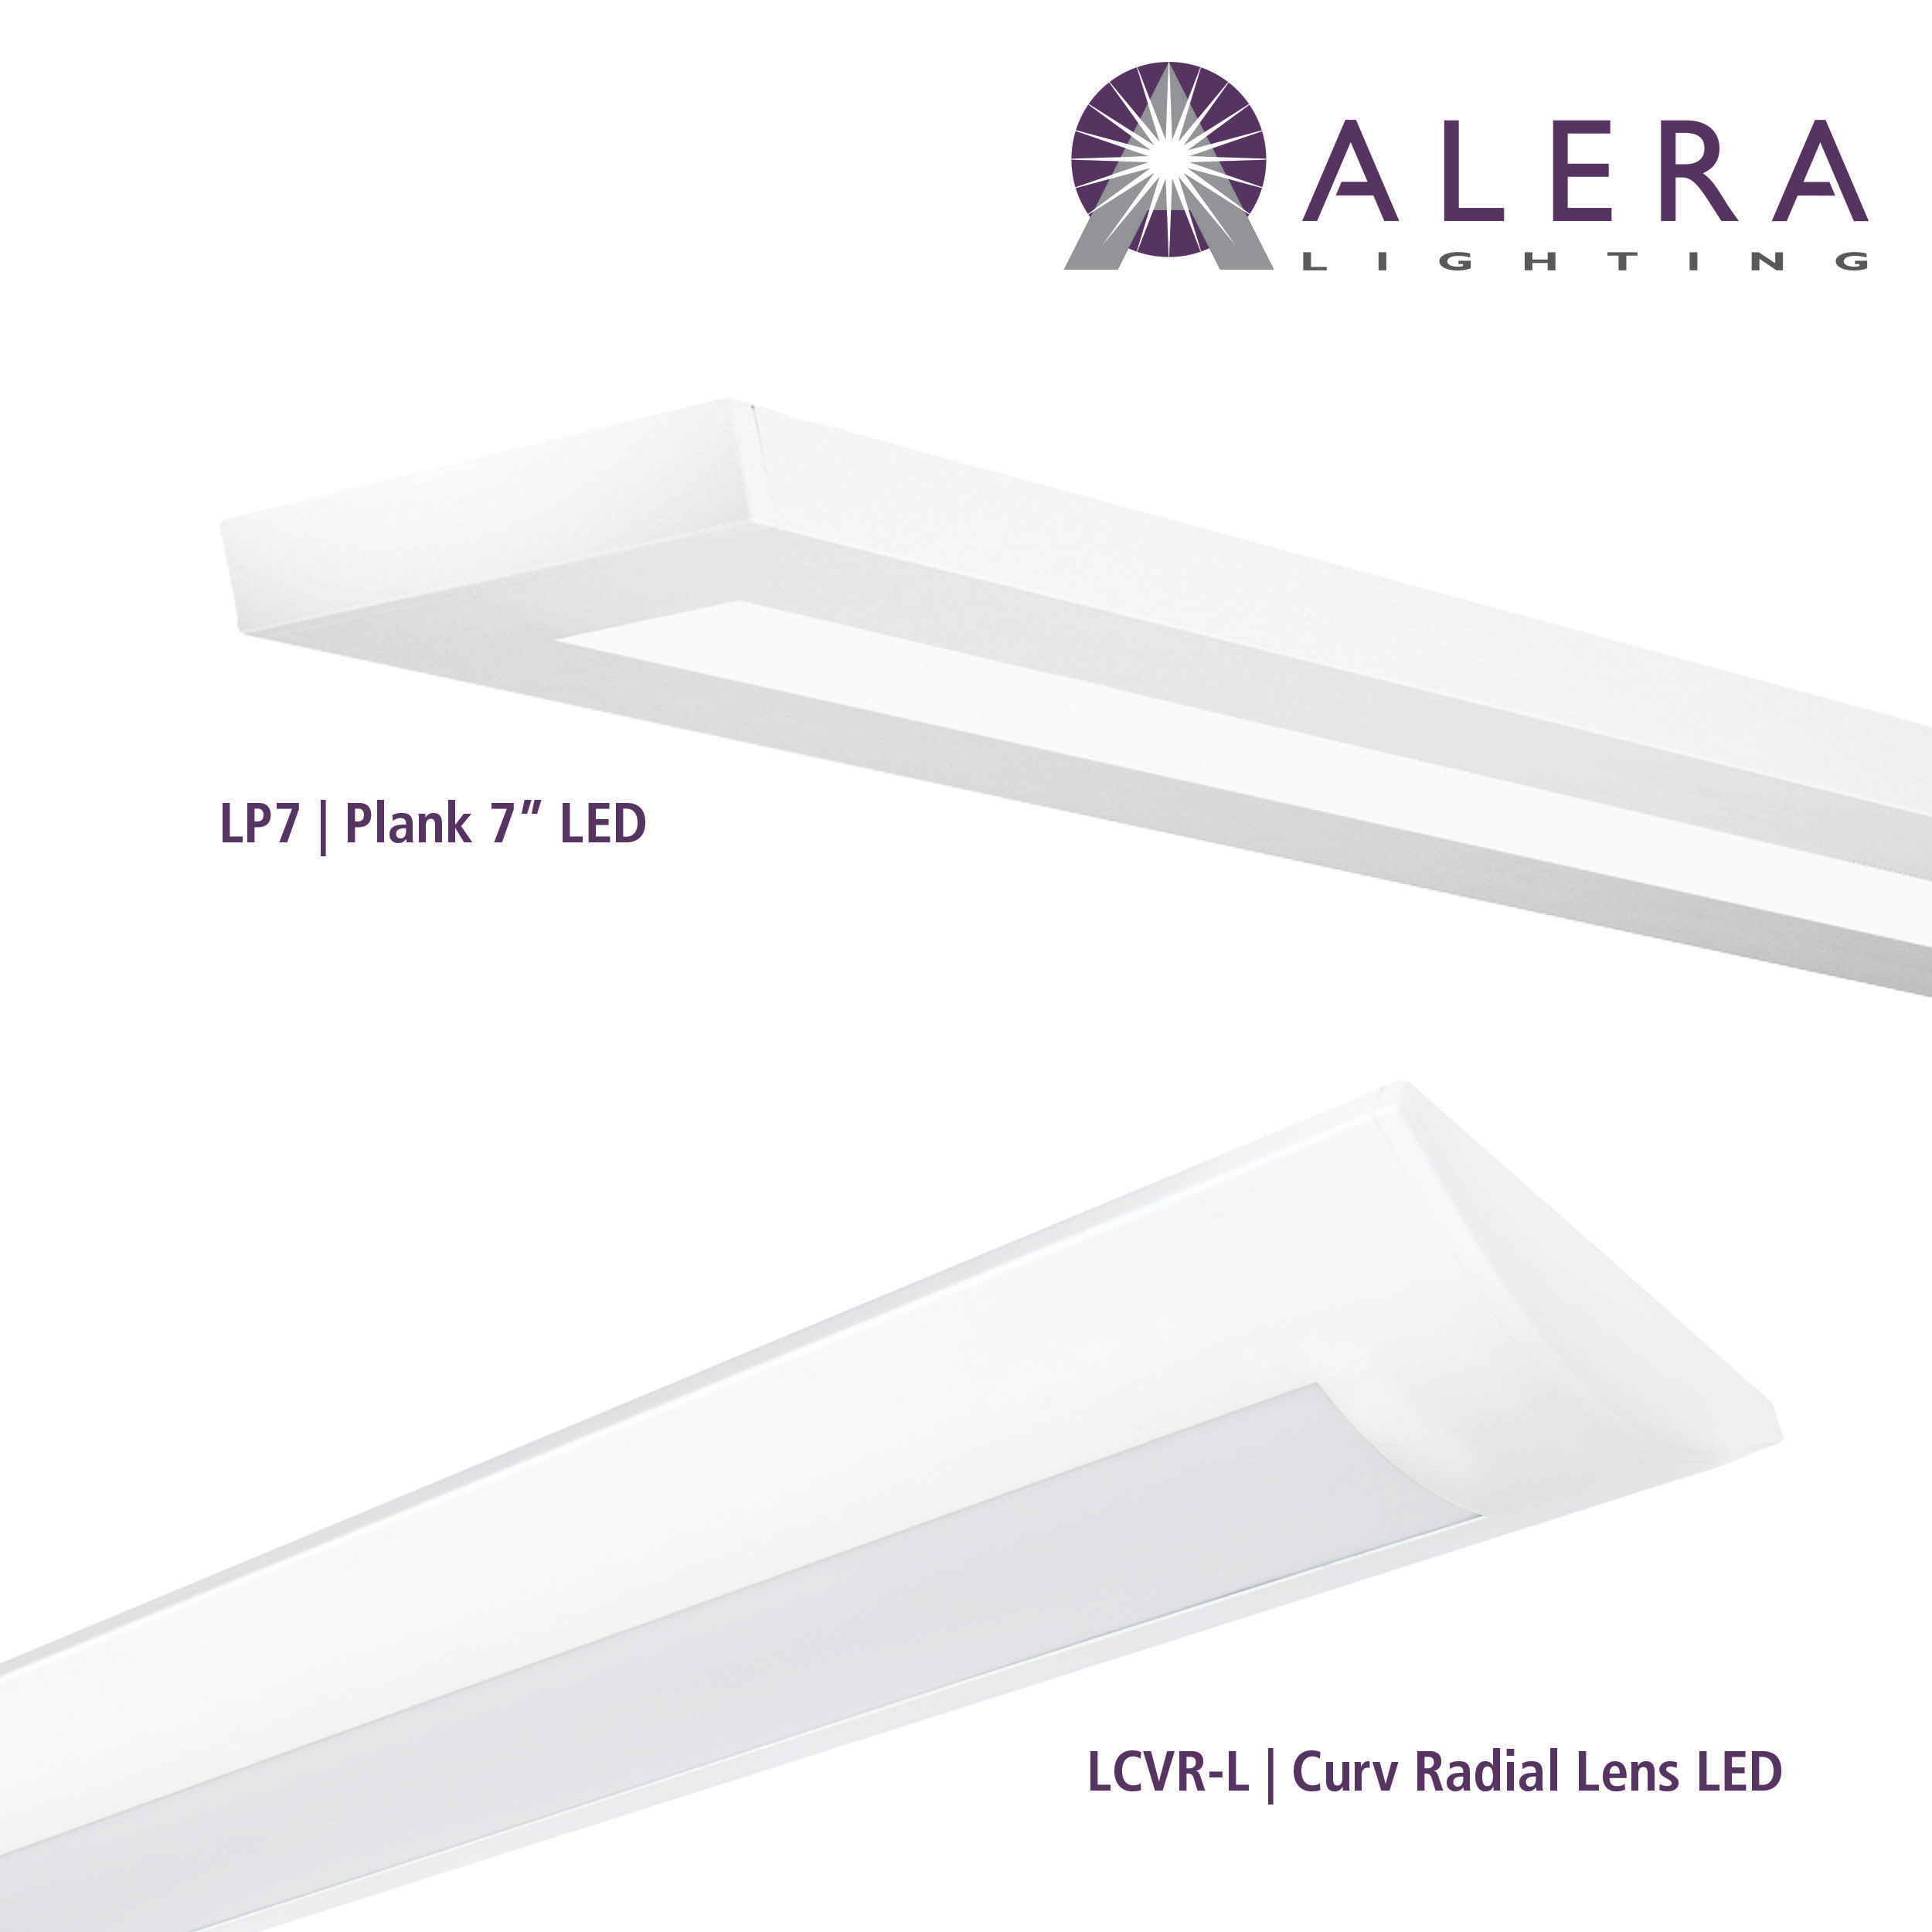 Alera Lighting Introduces Two New Linear LED Lighting Fixtures ...